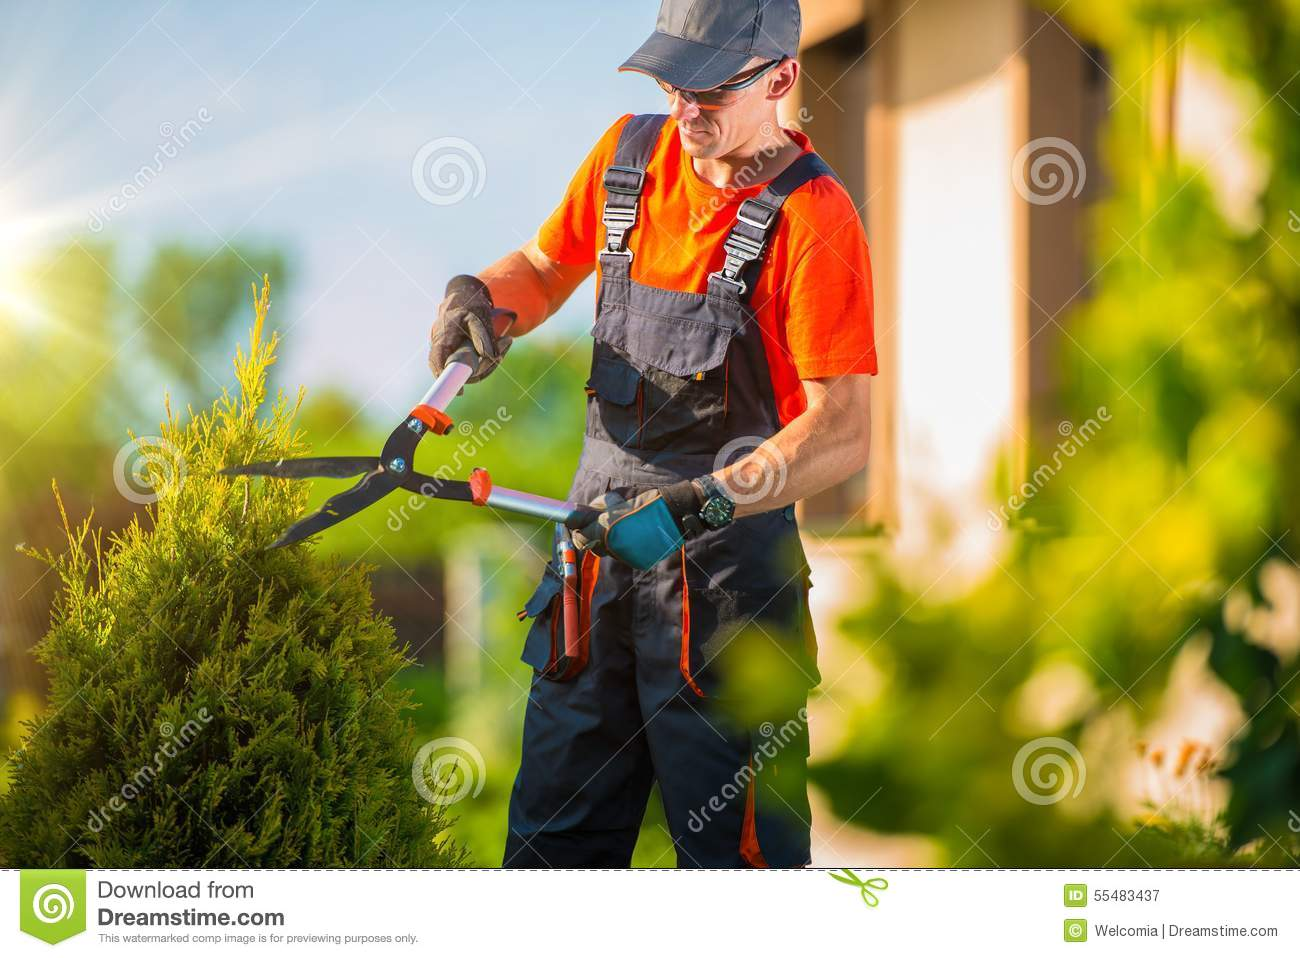 Garden Bush: Pro Gardener Plants Trim Stock Image. Image Of Tool